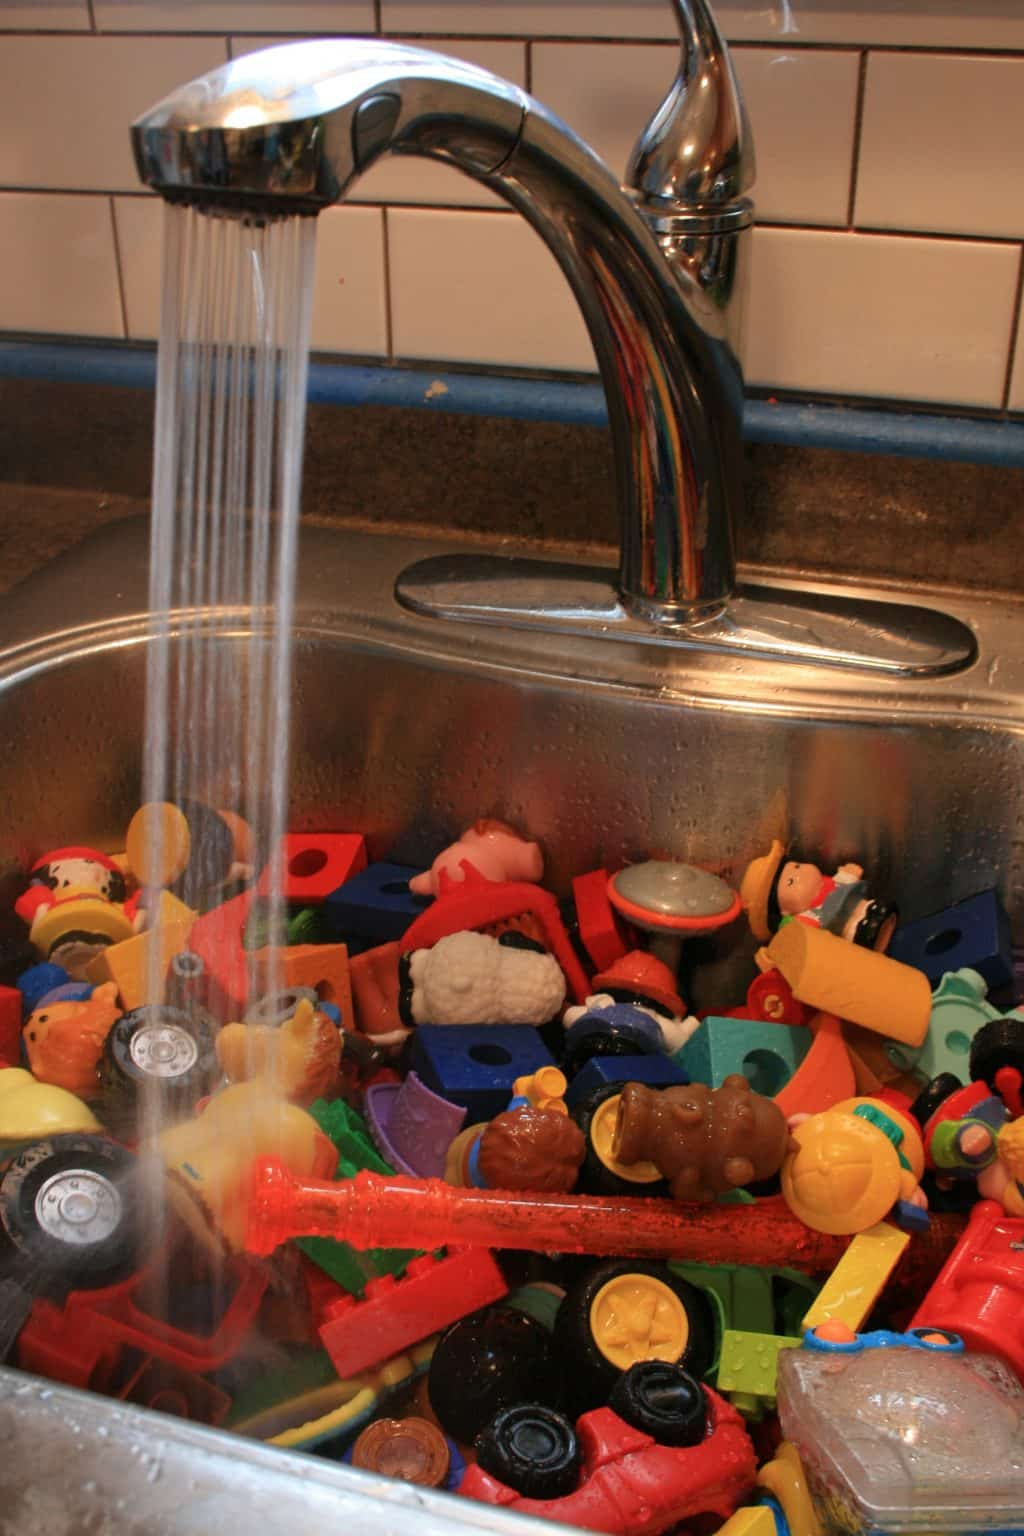 How to Disinfect Toys Properly